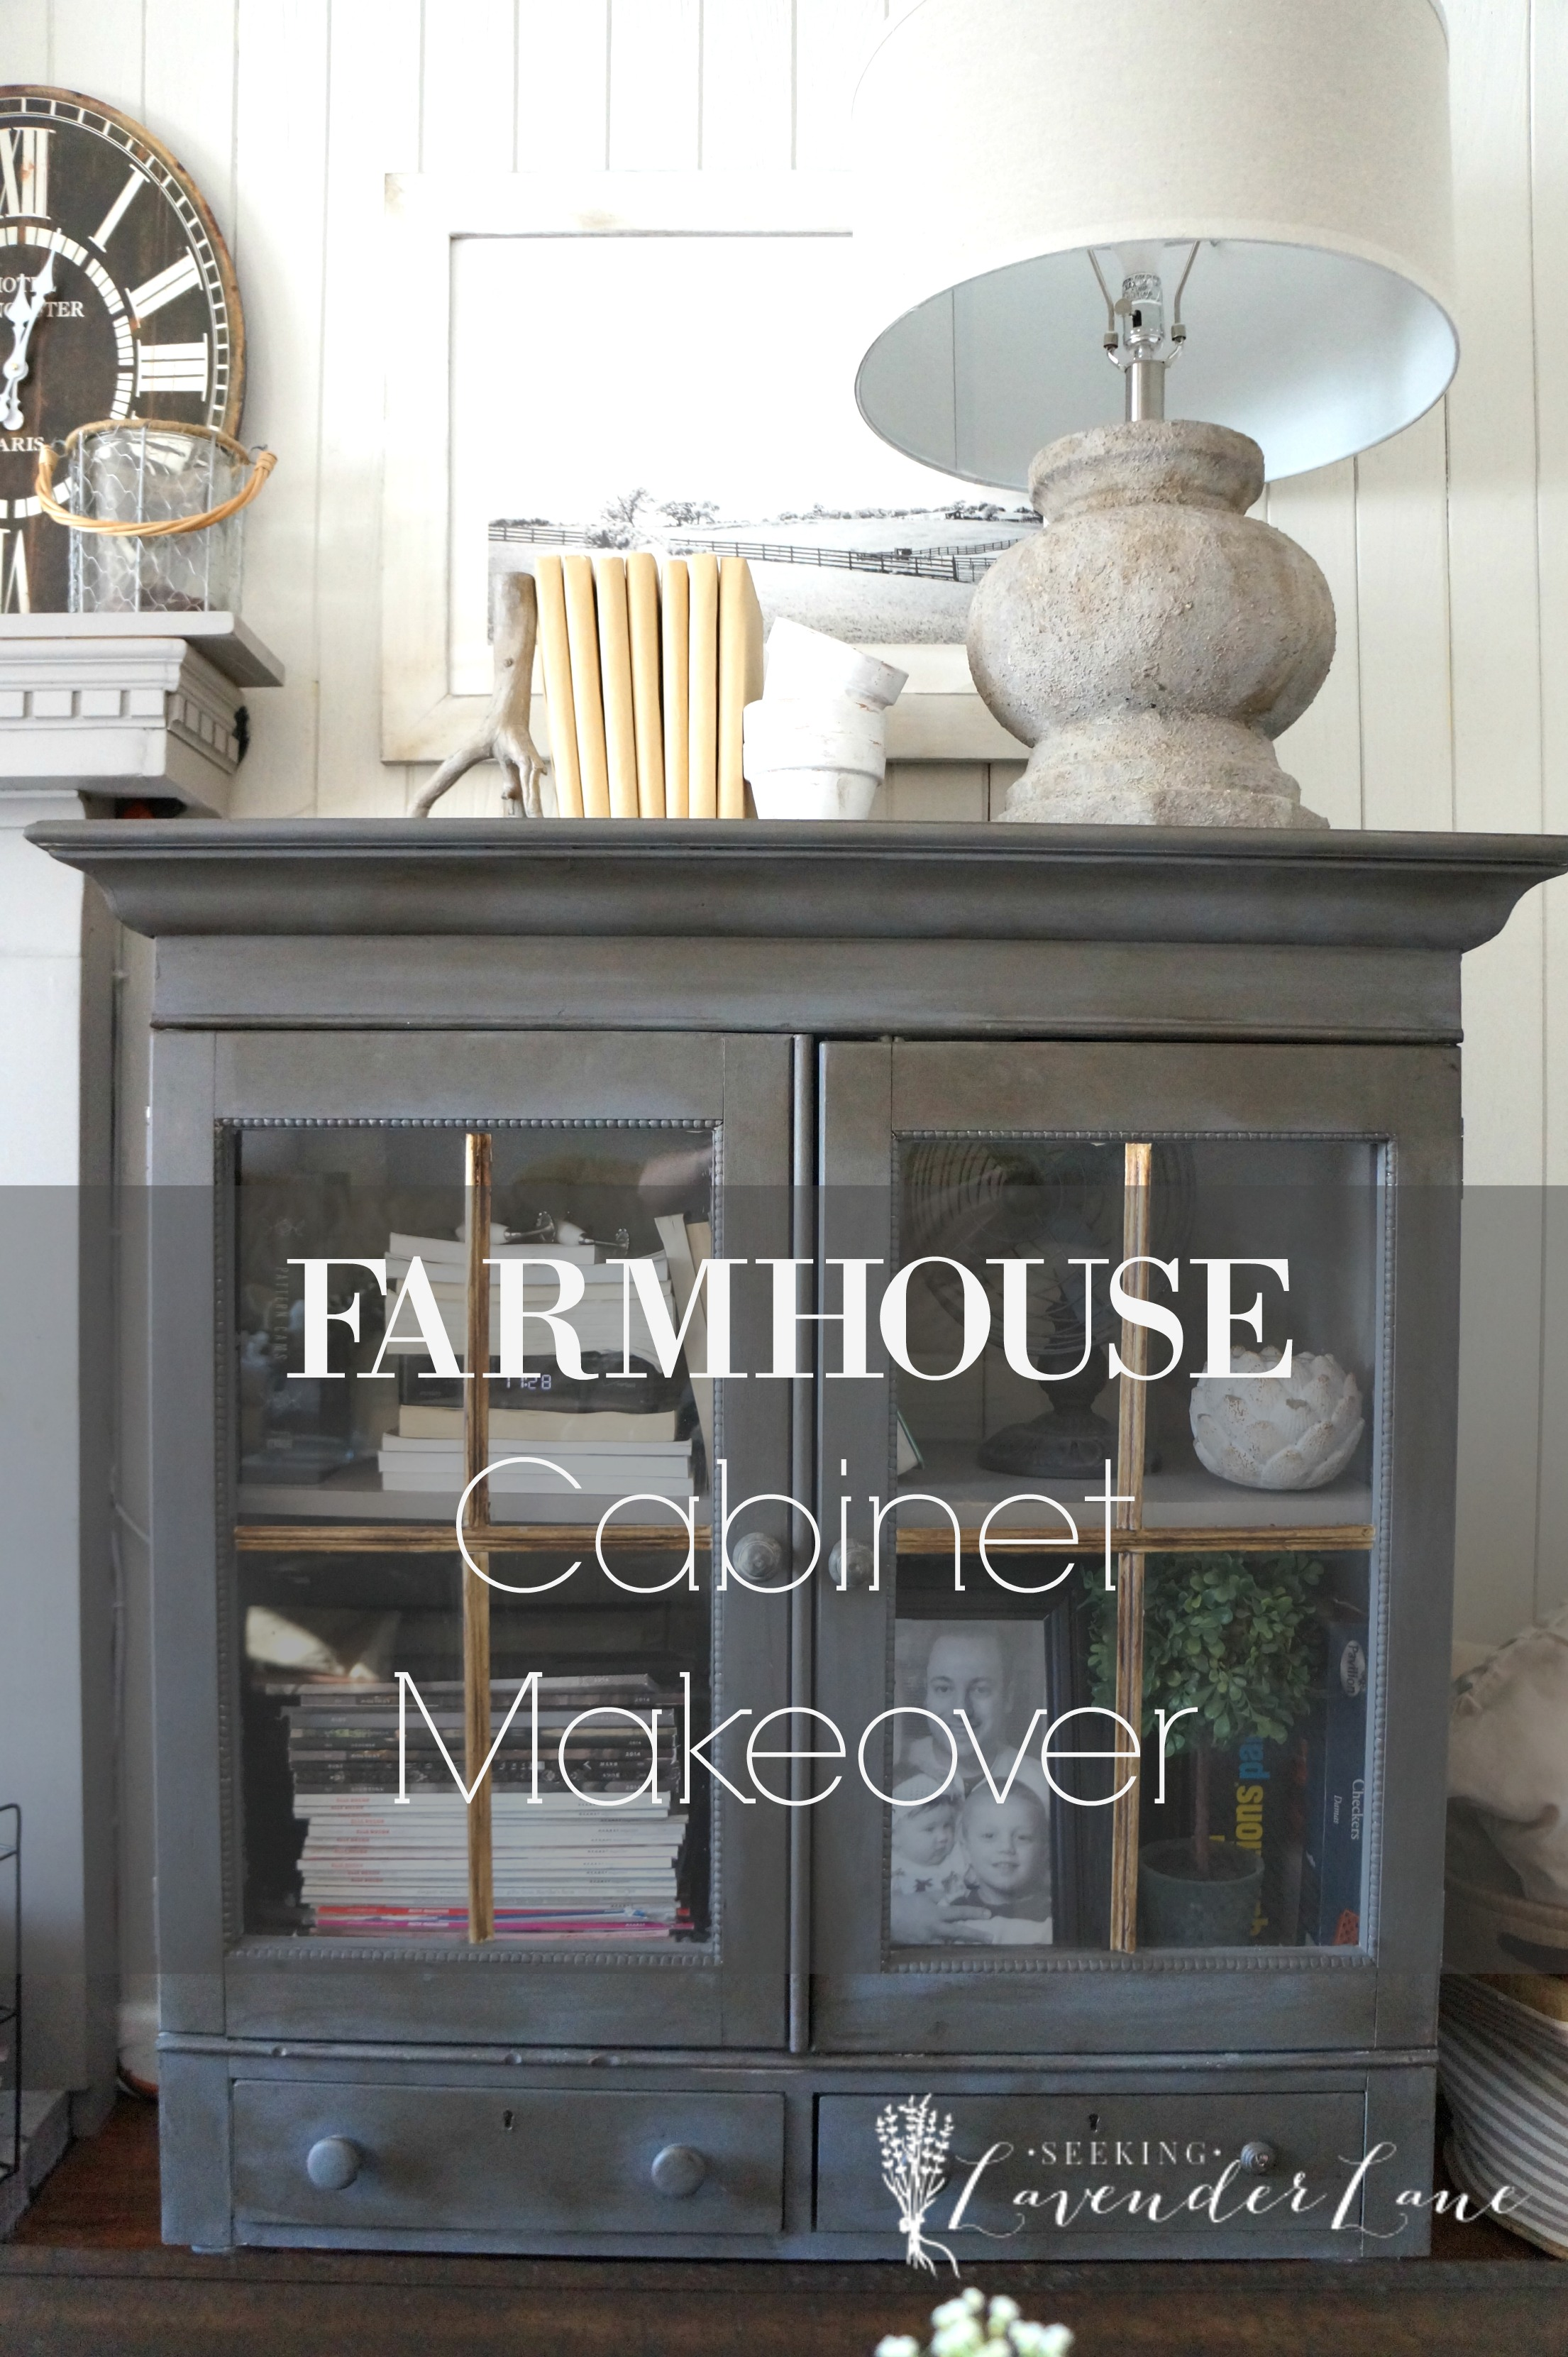 Farmhouse cabinet makeover new year new room challenge - Decals for kitchen cabinets ...